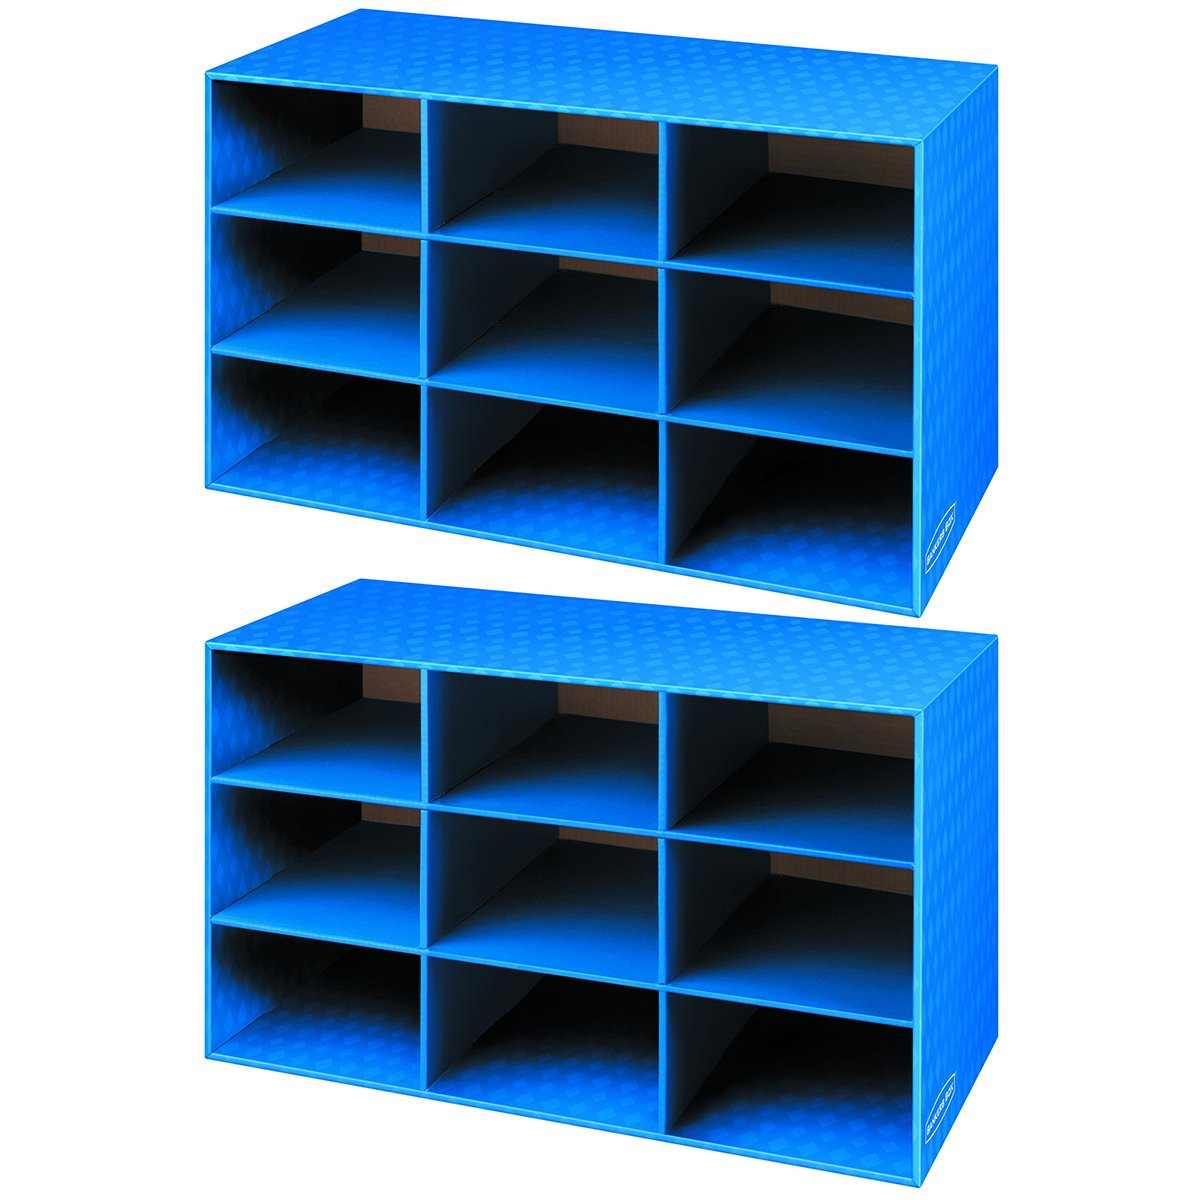 Bankers Box Classroom 9 Compartment Cubby Storage, 2 Pack by Bankers Box